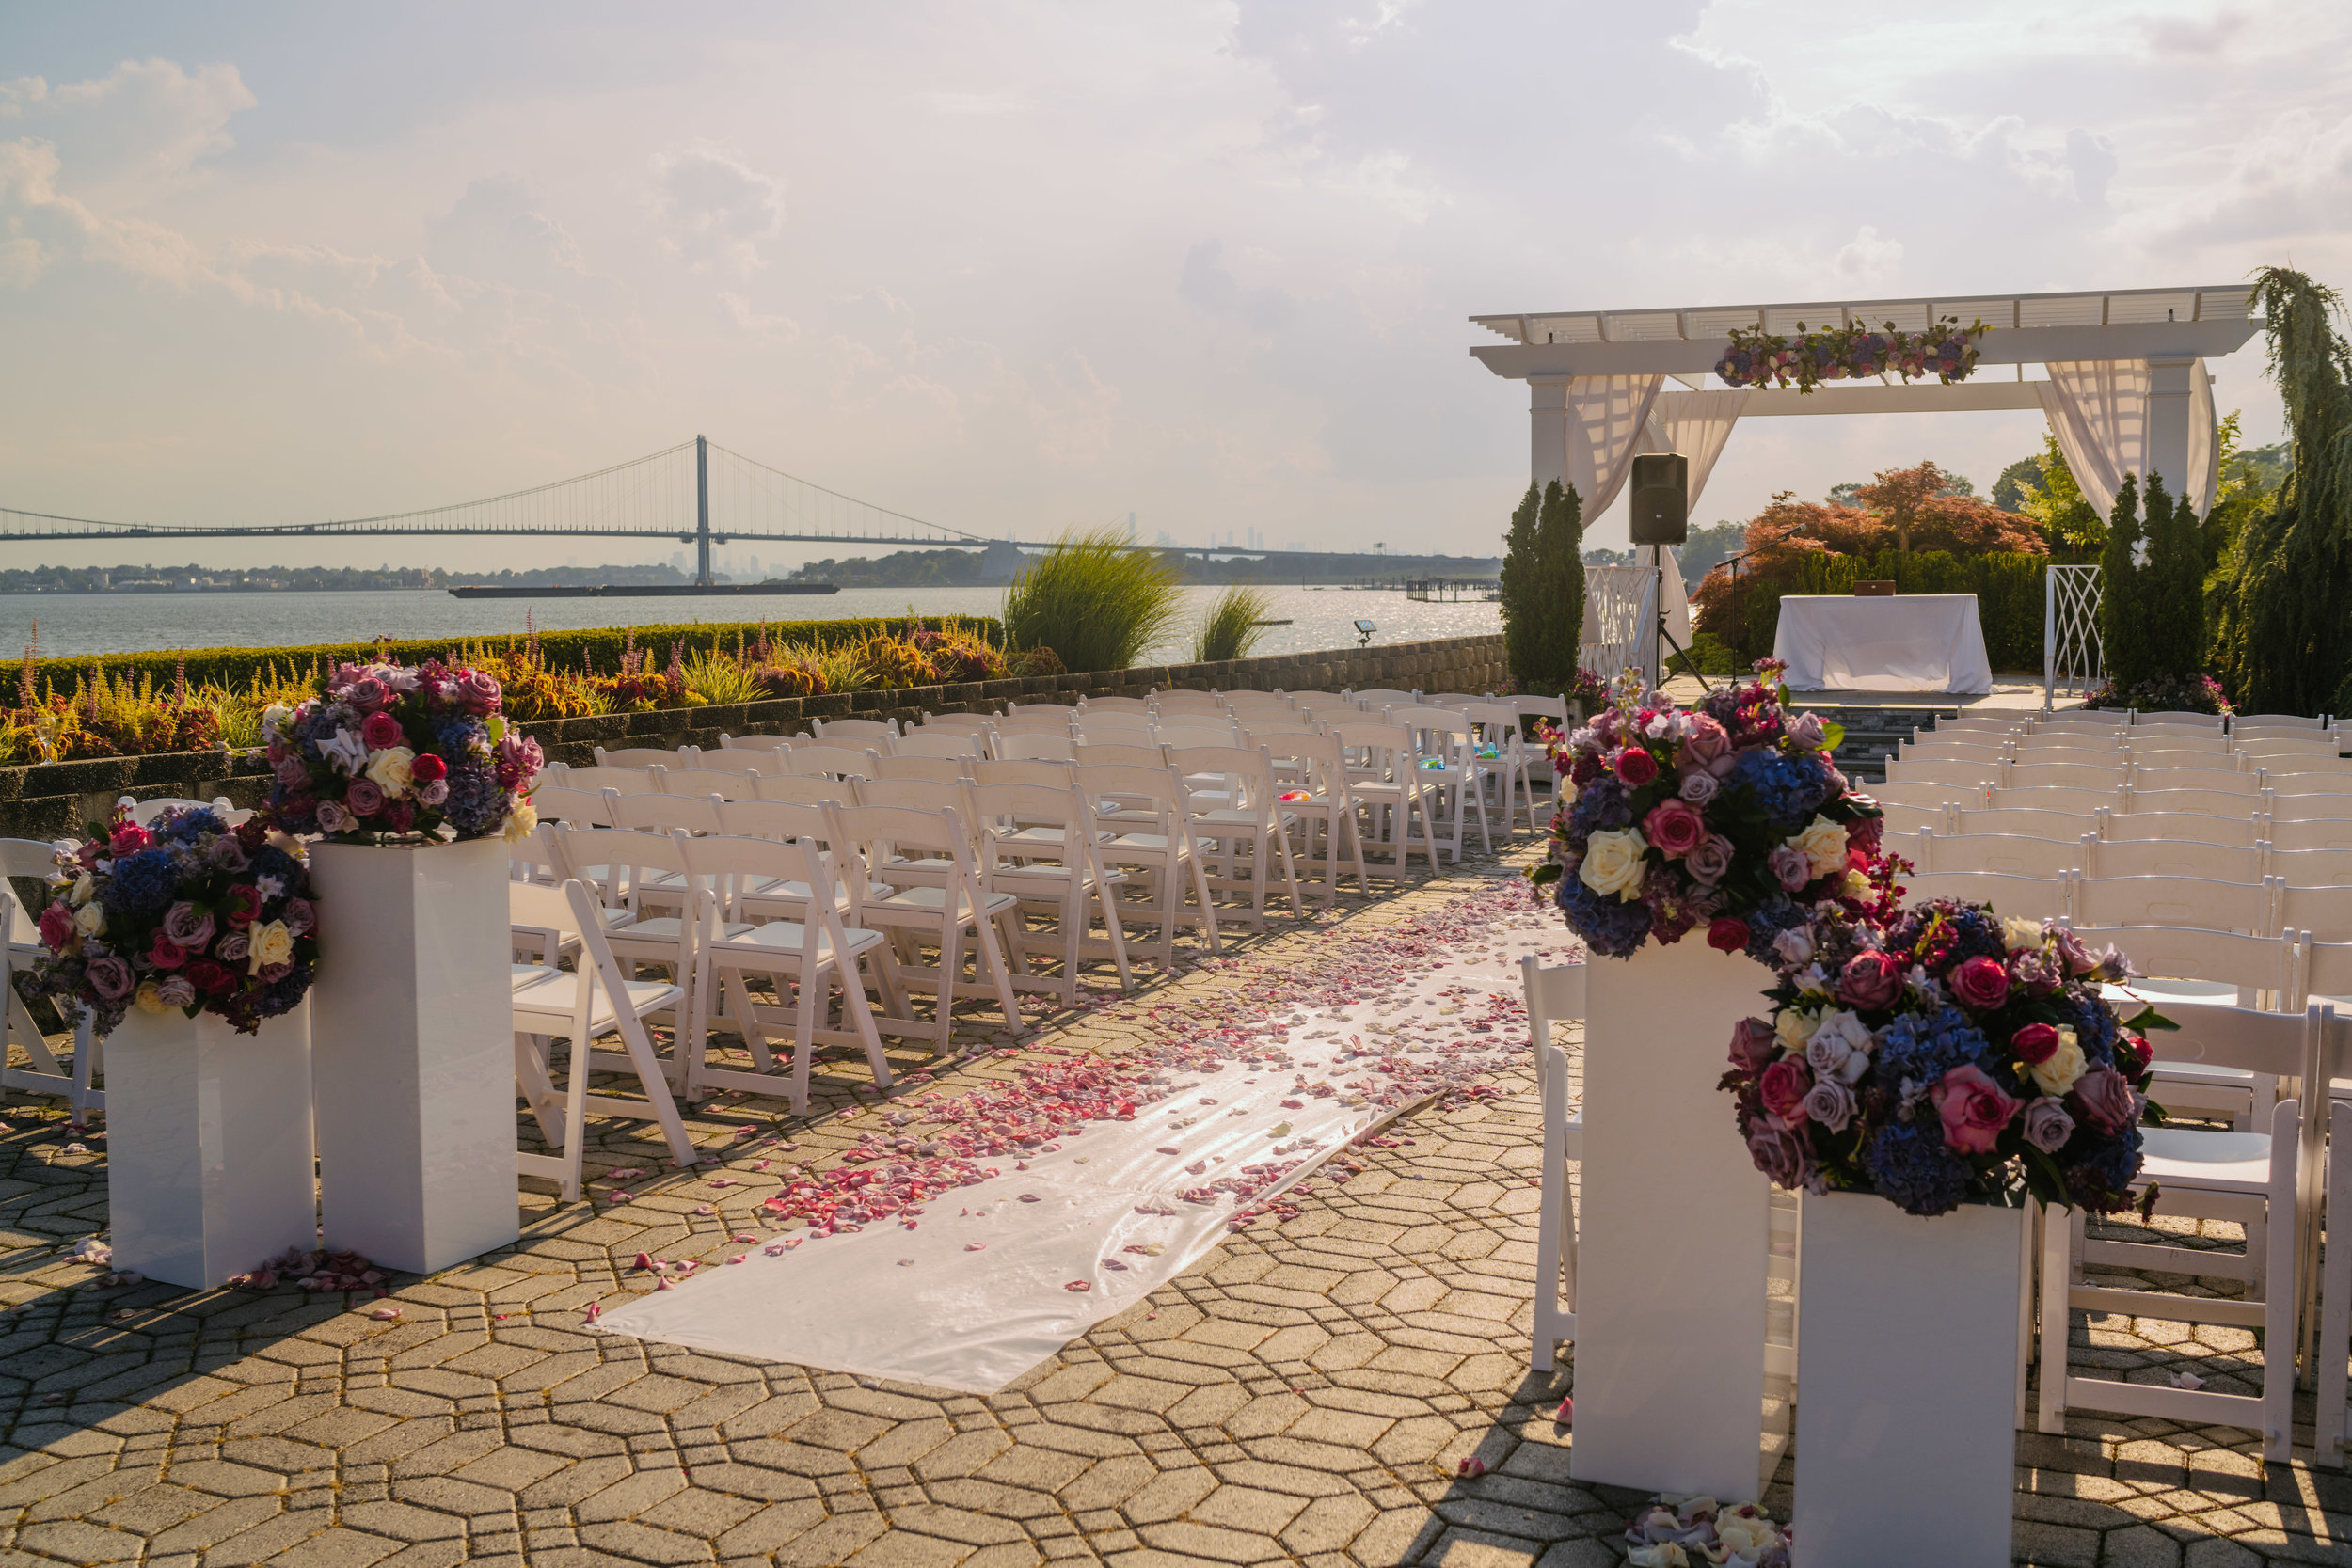 Marina Del Rey Outdoor Wedding Ceremony. One of the best views in New York City.